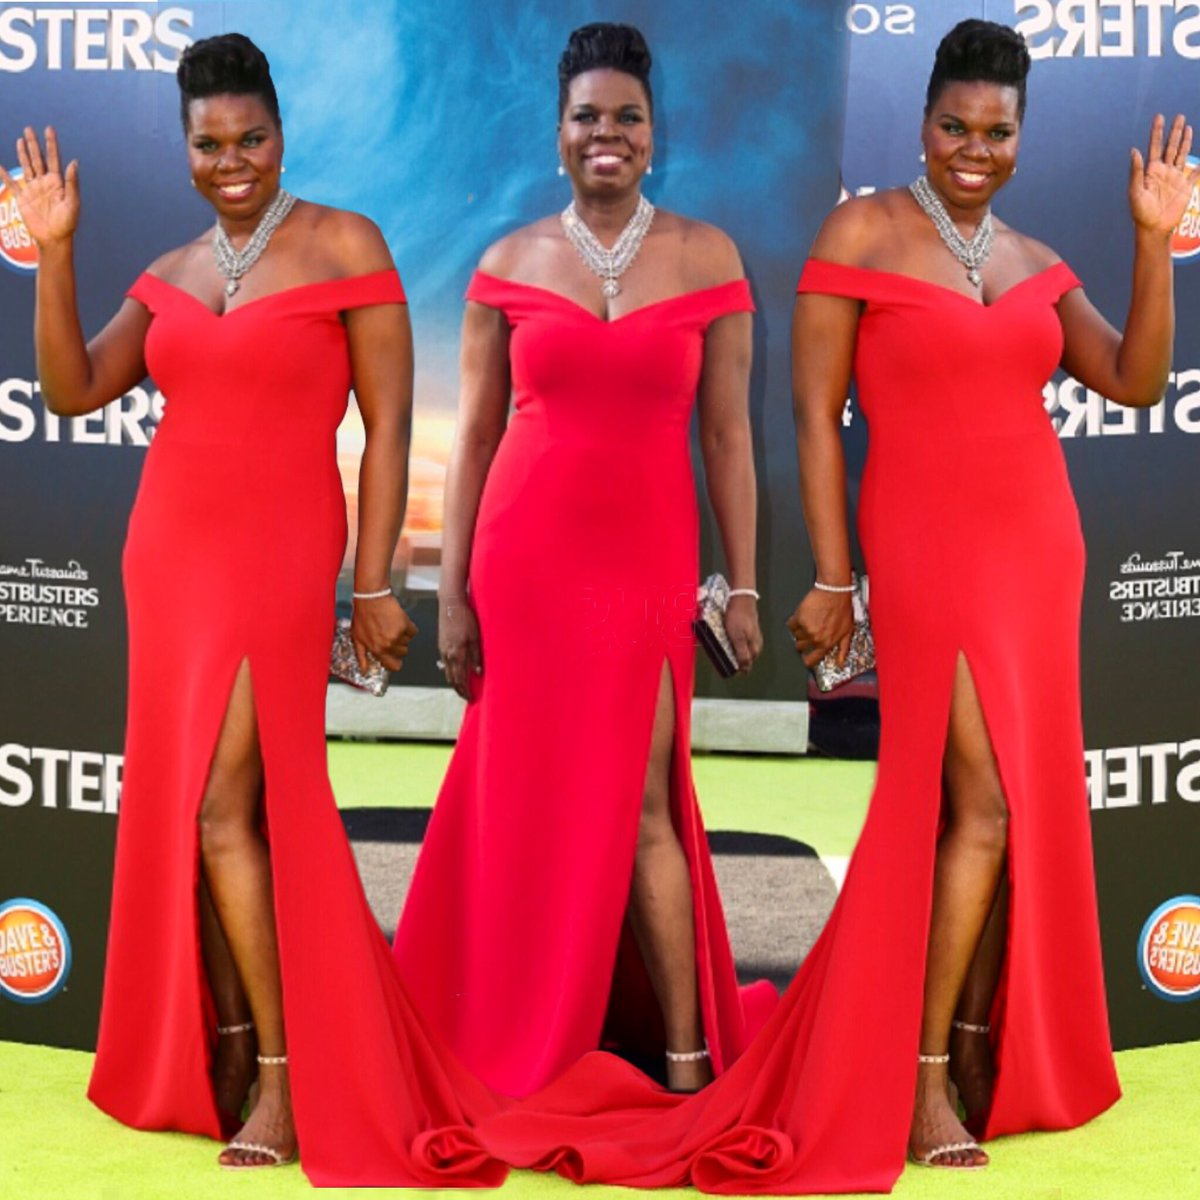 Now that's how you do it! Simple, elegant, and chic!! @Lesdoggg at the premiere of #Ghostbusters wearing Siriano!